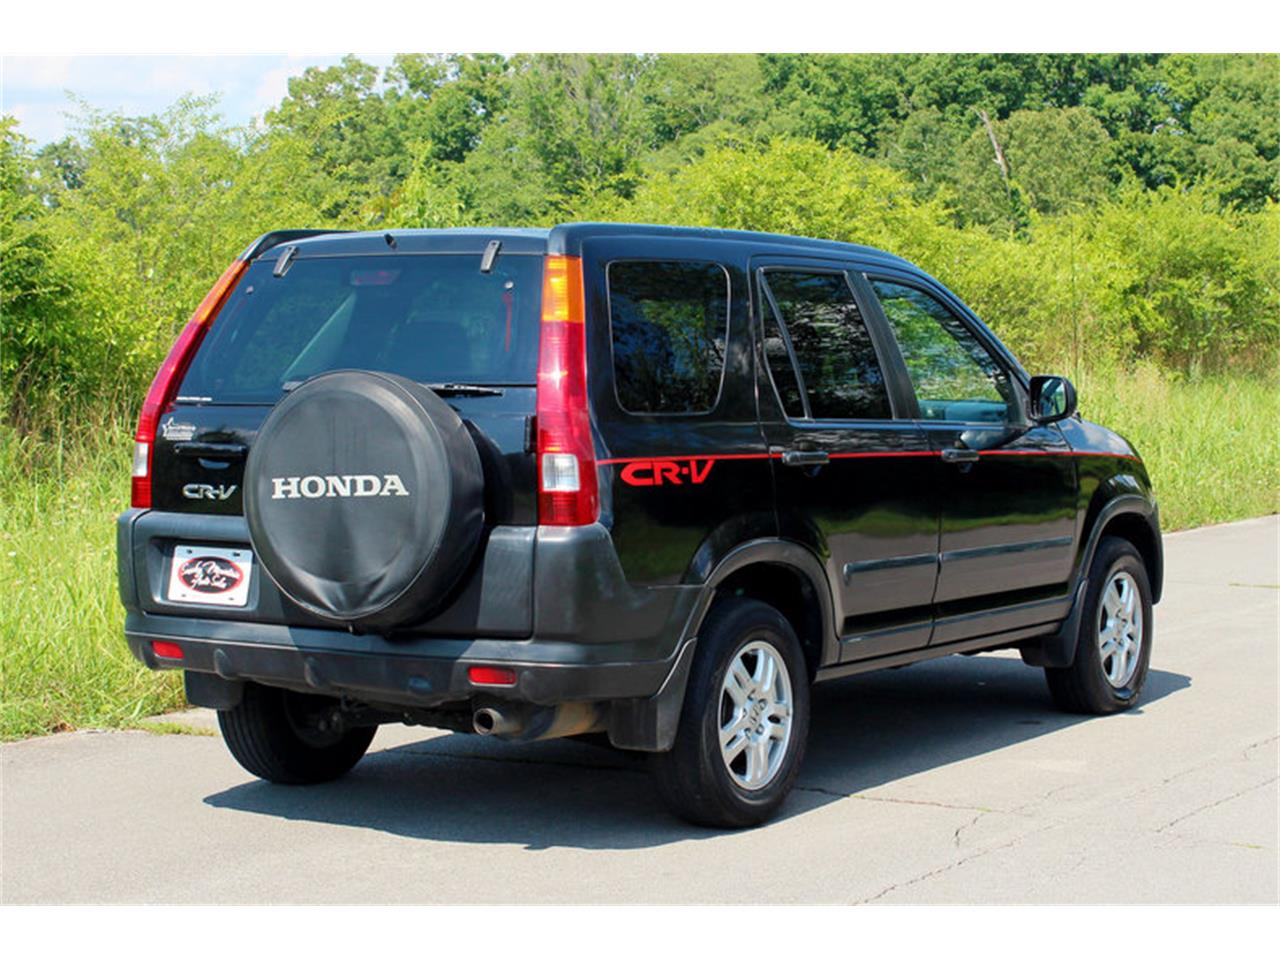 2003 Honda Crv For Sale Cc 1140692 Cr V Large Picture Of Offered By Smoky Mountain Traders Og5w